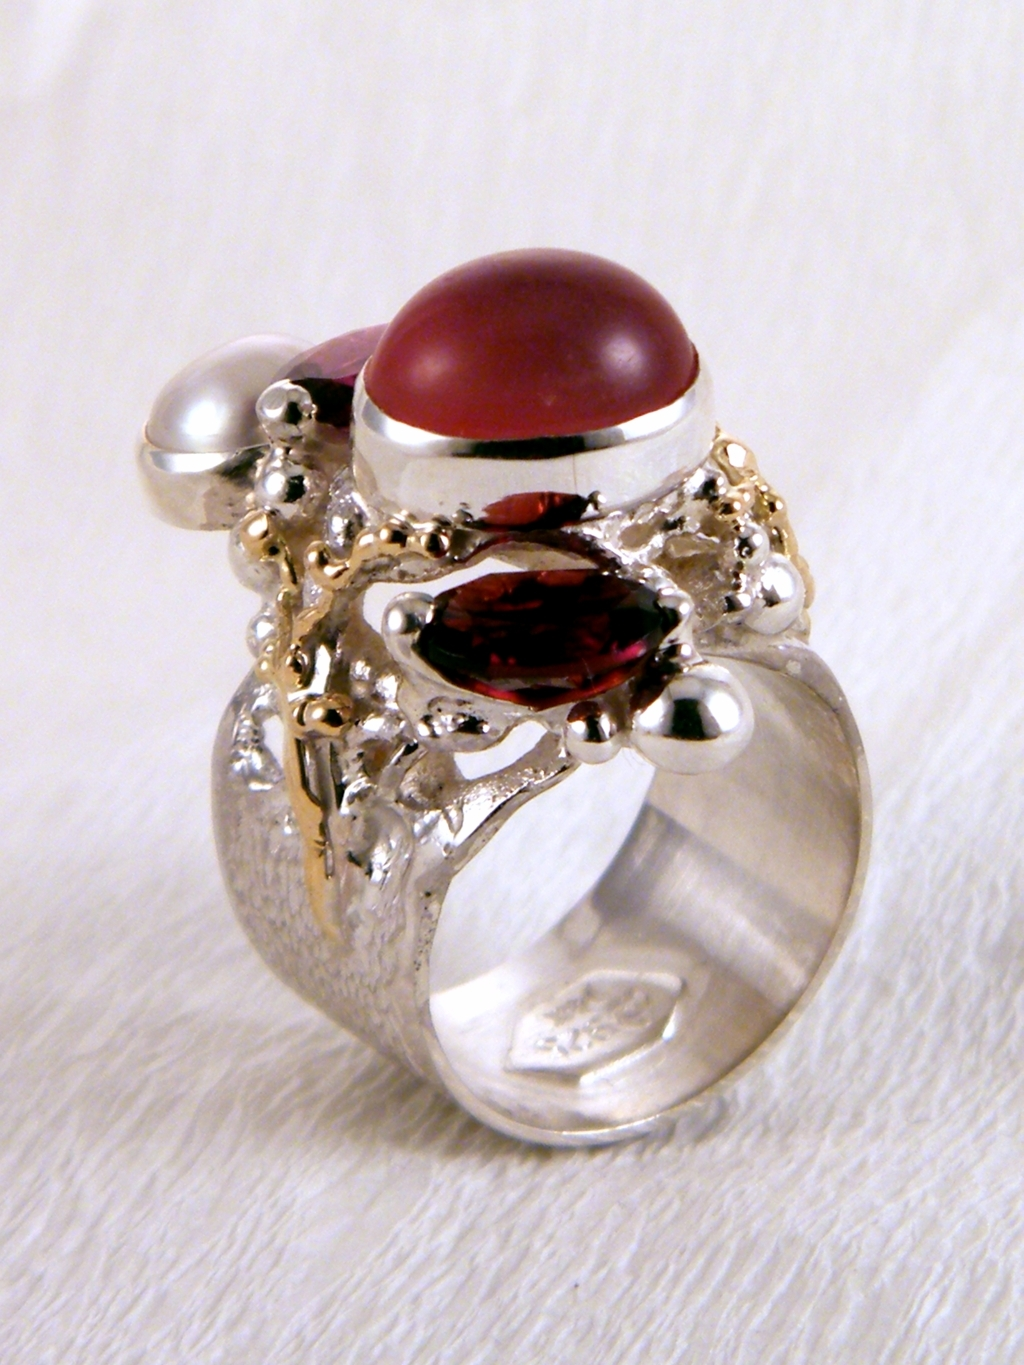 Gregory Pyra Piro Band Ring #6271 in Sterling Silver and 14k Gold with Garnet, Moonstone, and Pearl